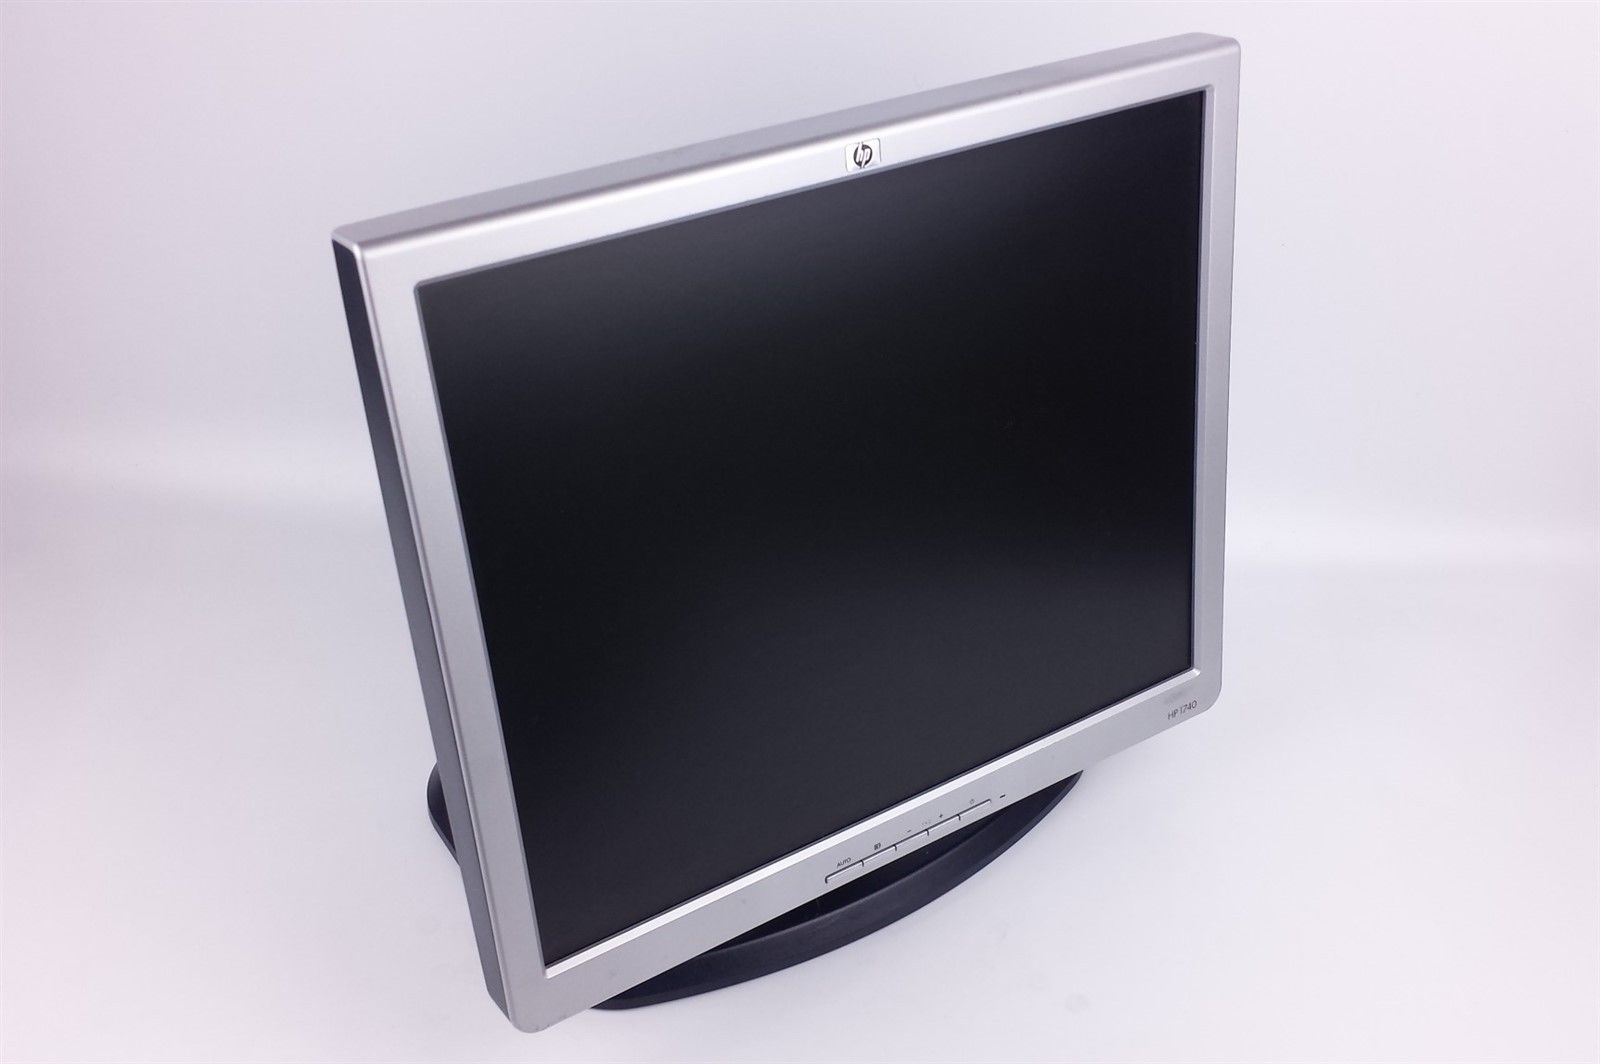 "HP 1740 LCD Flat Panel Display Monitor 17"" with Power Cord VGA Cord Bunny Stand"